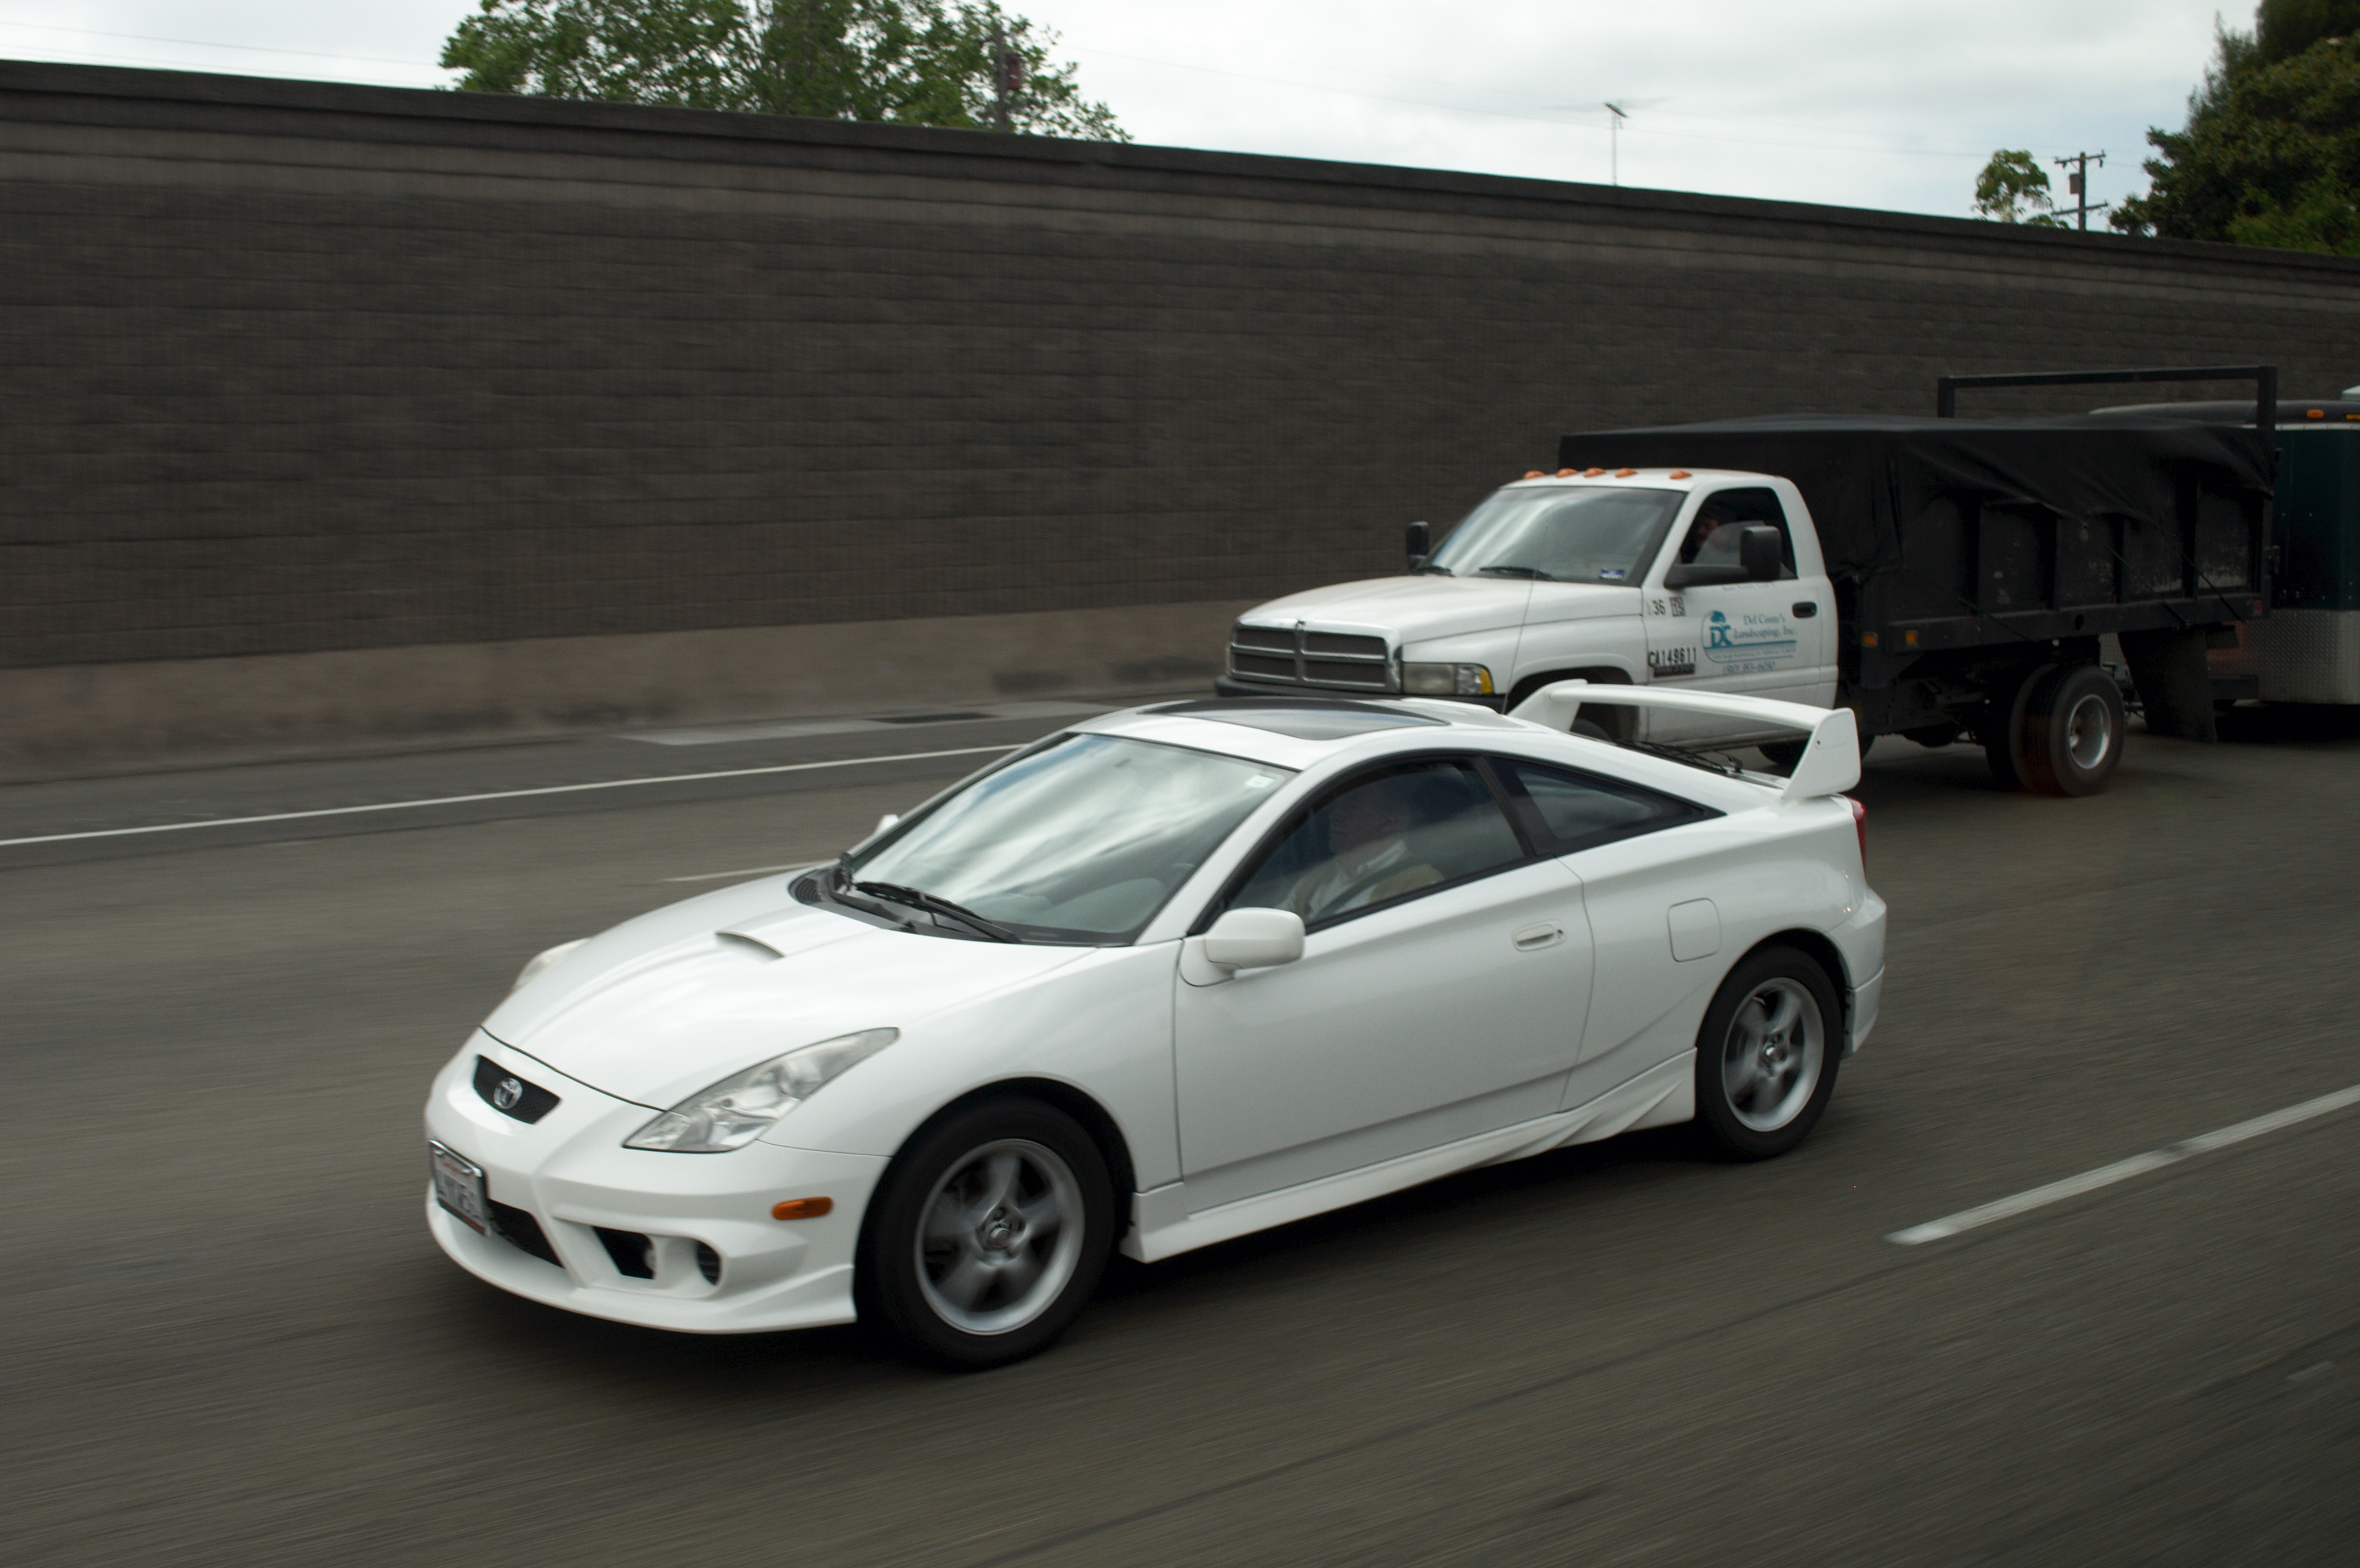 White sports car and truck on highway photo